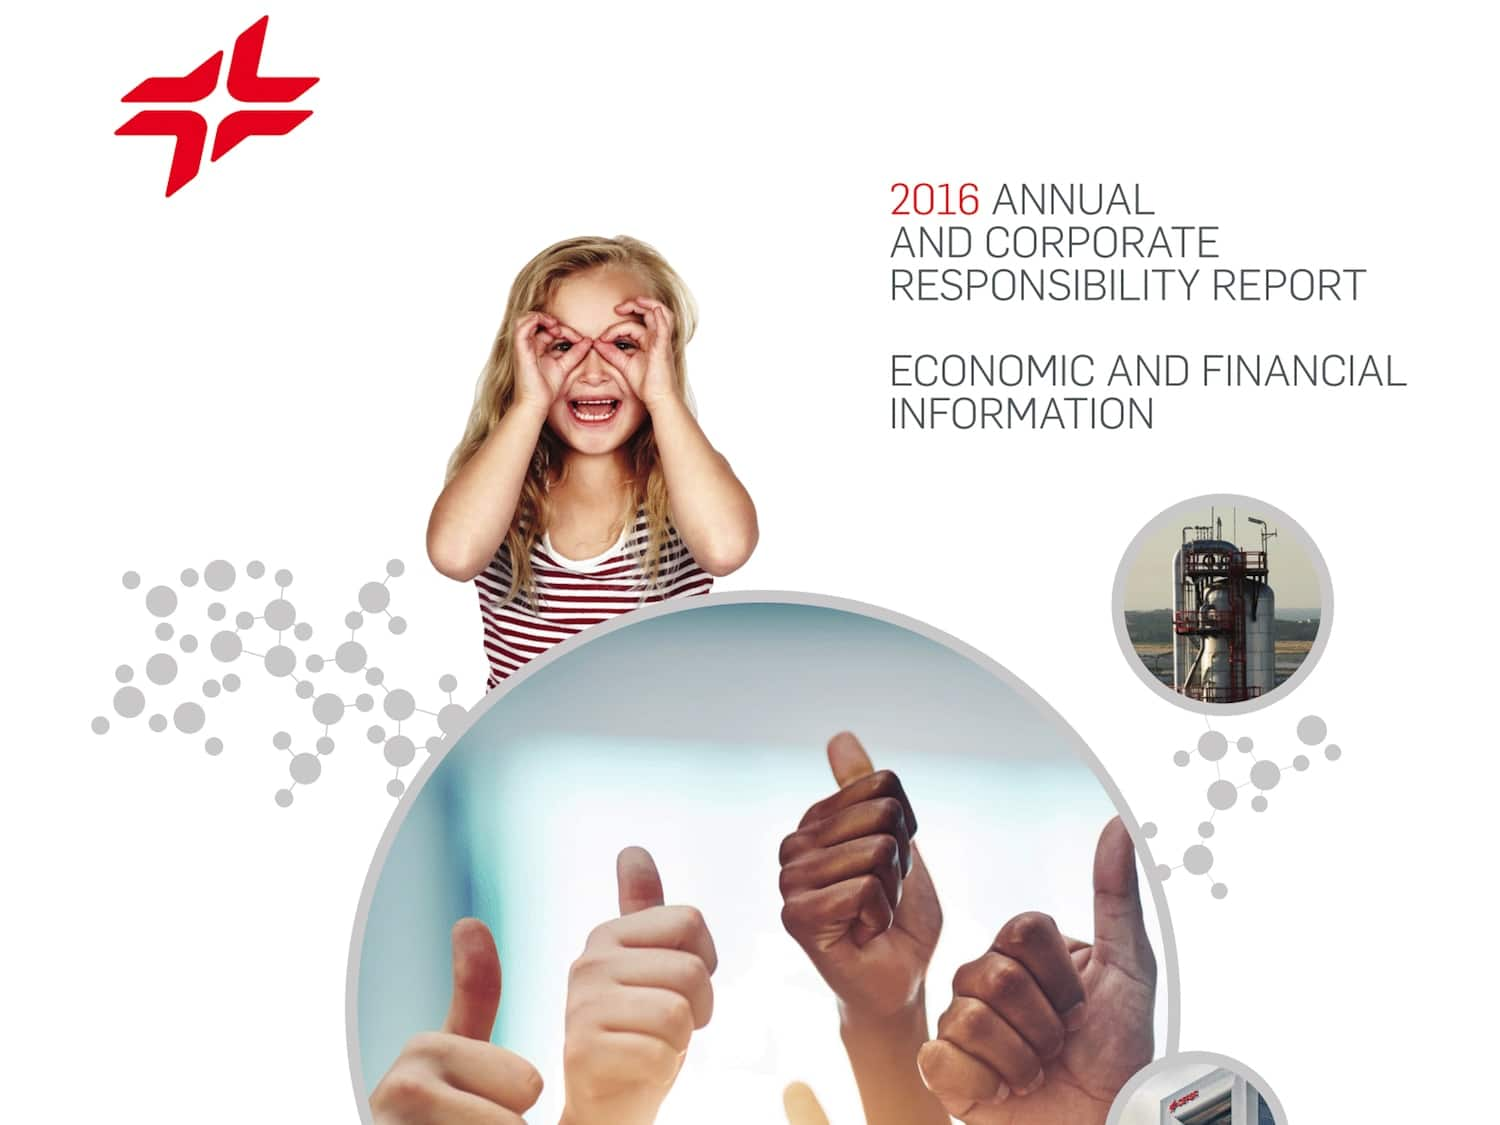 ANNUAL AND CORPORATE RESPONSIBILITY REPORT 2016